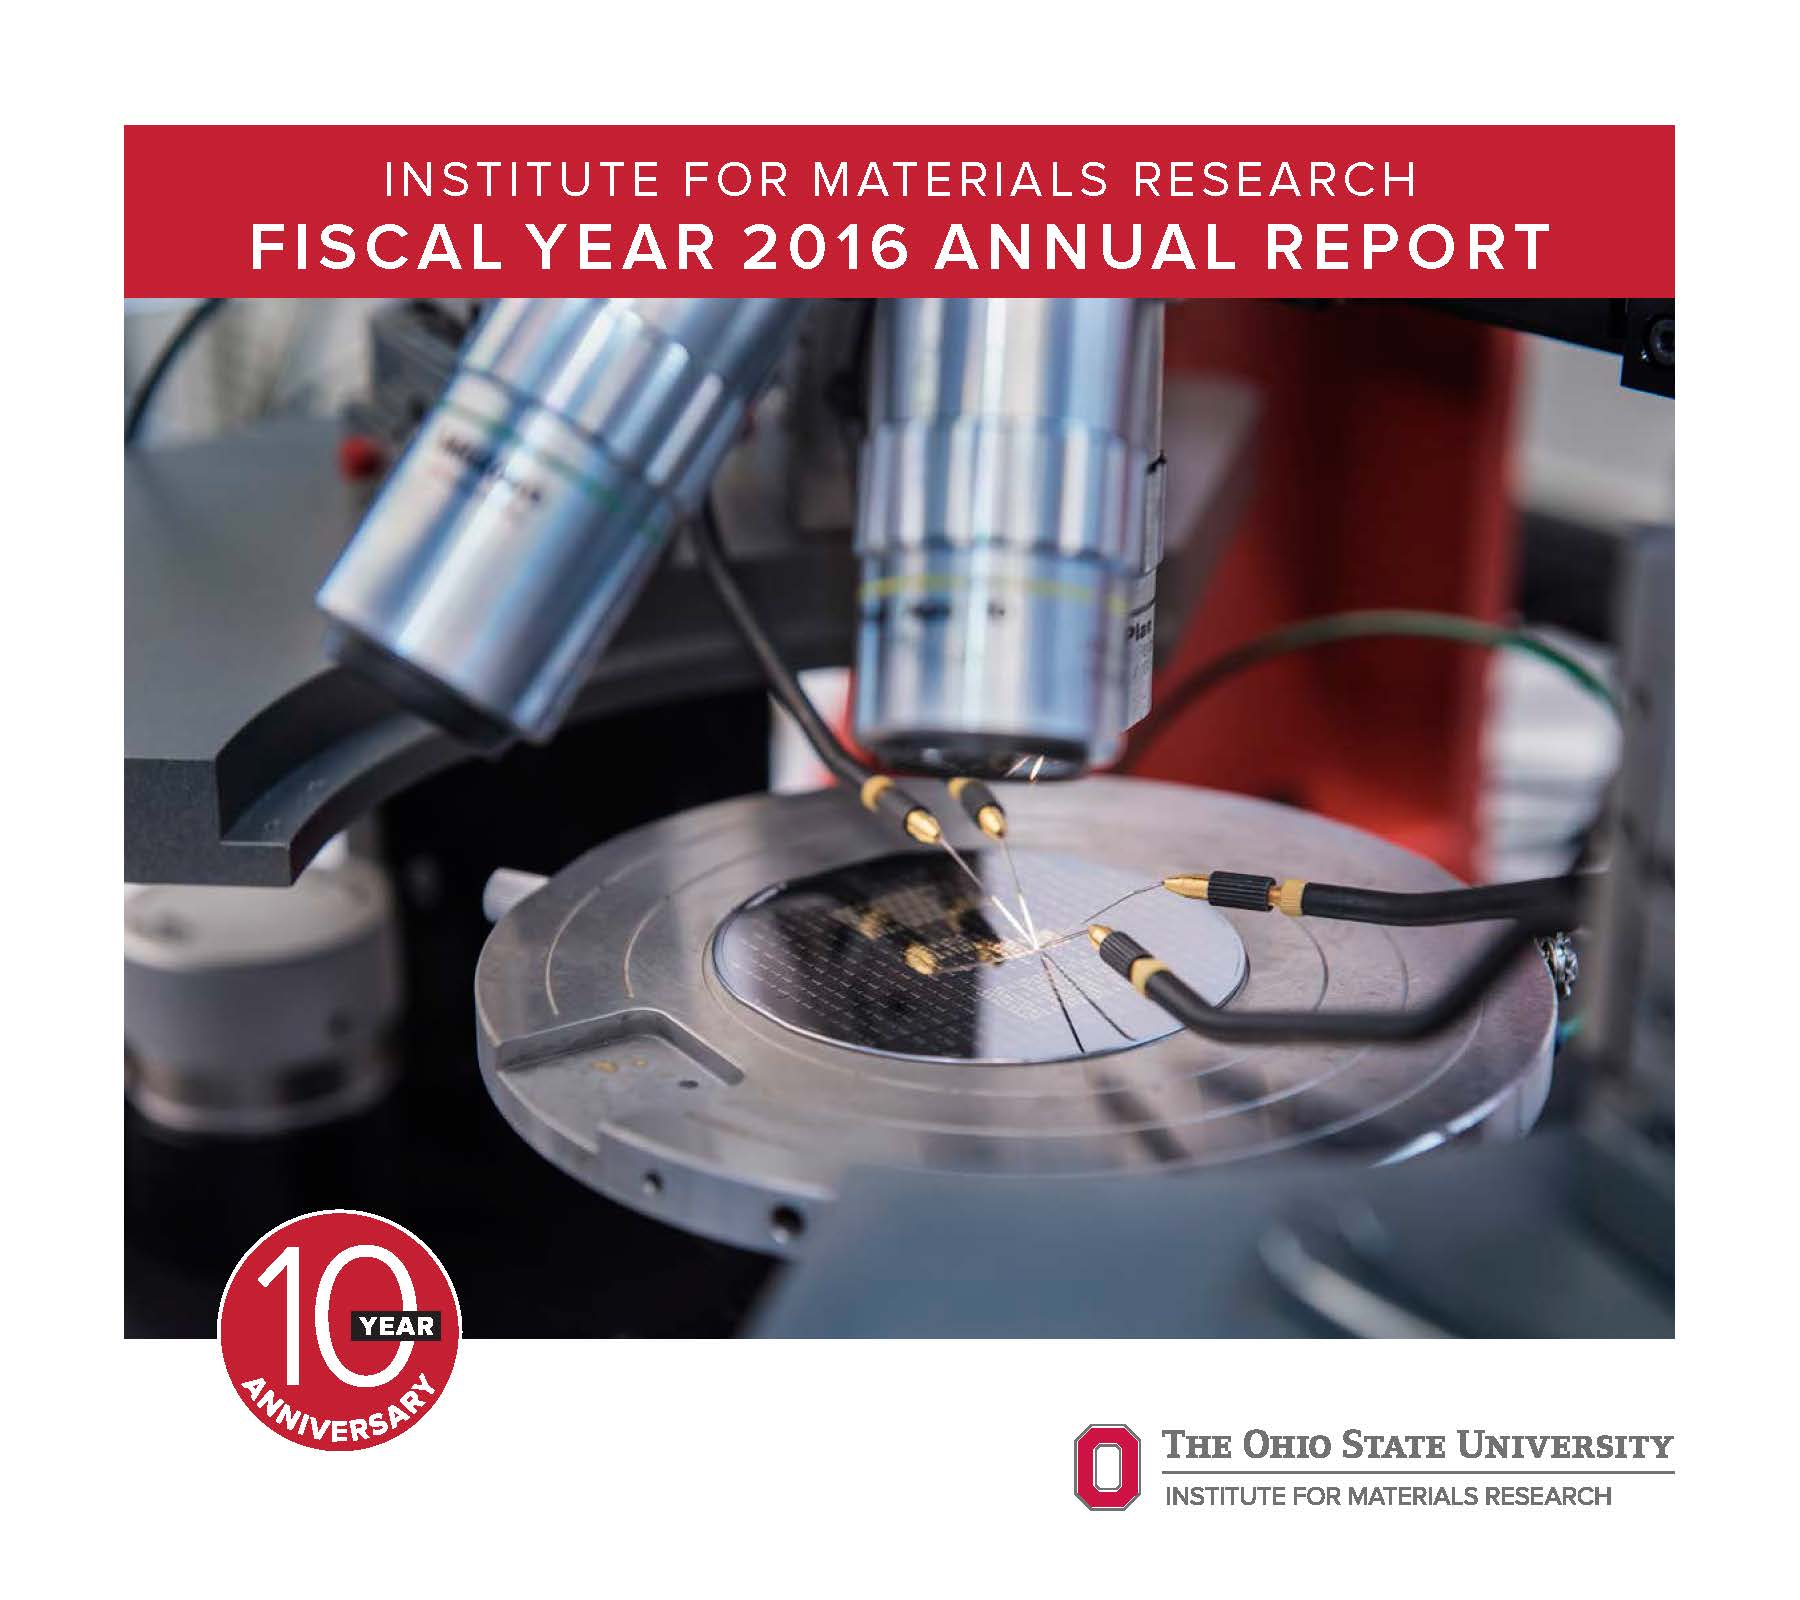 2016-imr-annual-report-cover